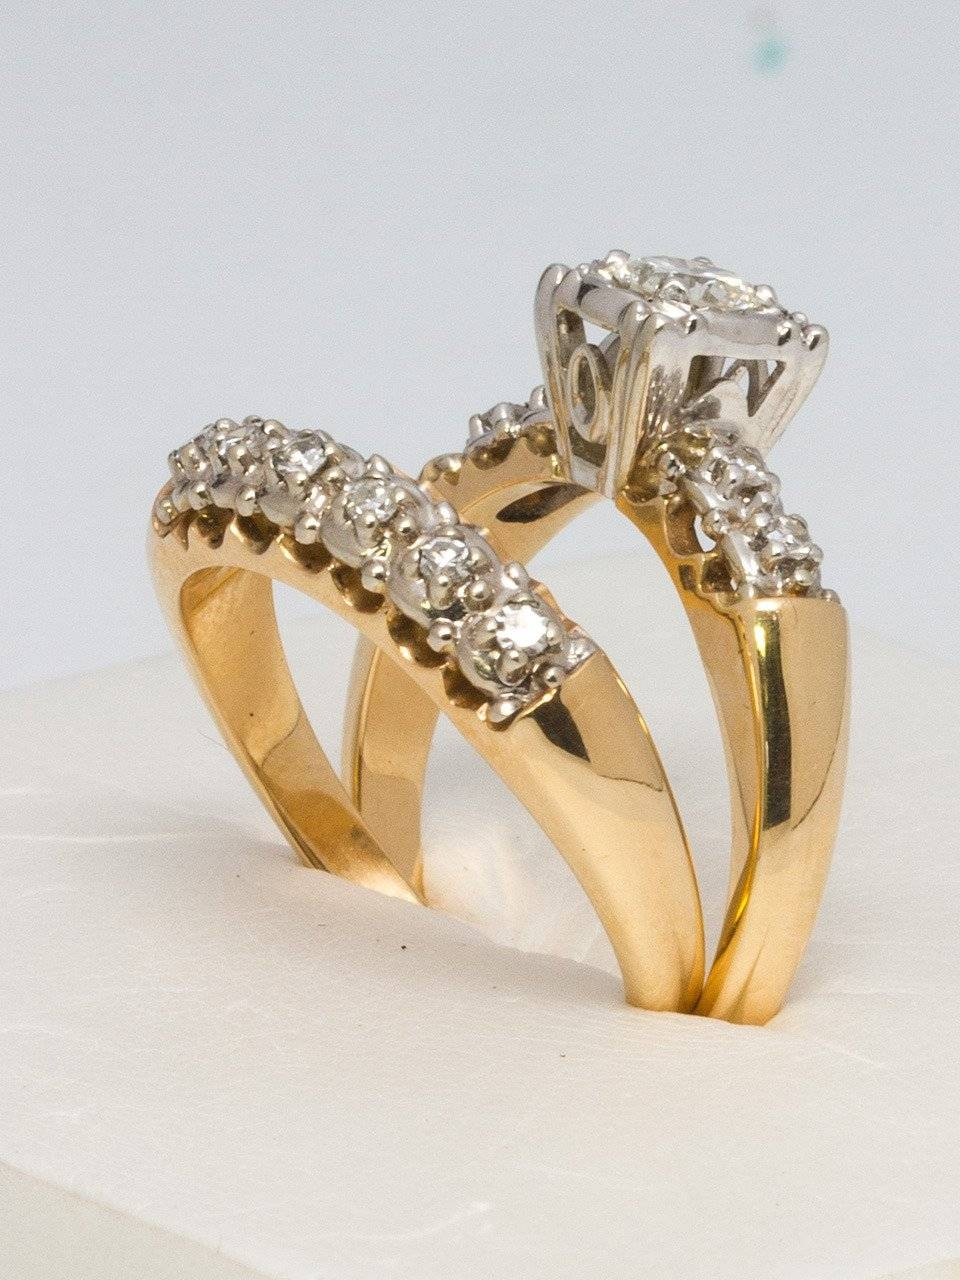 1950S Yellow Gold And Diamond Wedding Ring Set For Sale At 1Stdibs Inside Yellow Diamond Wedding Sets (View 6 of 15)